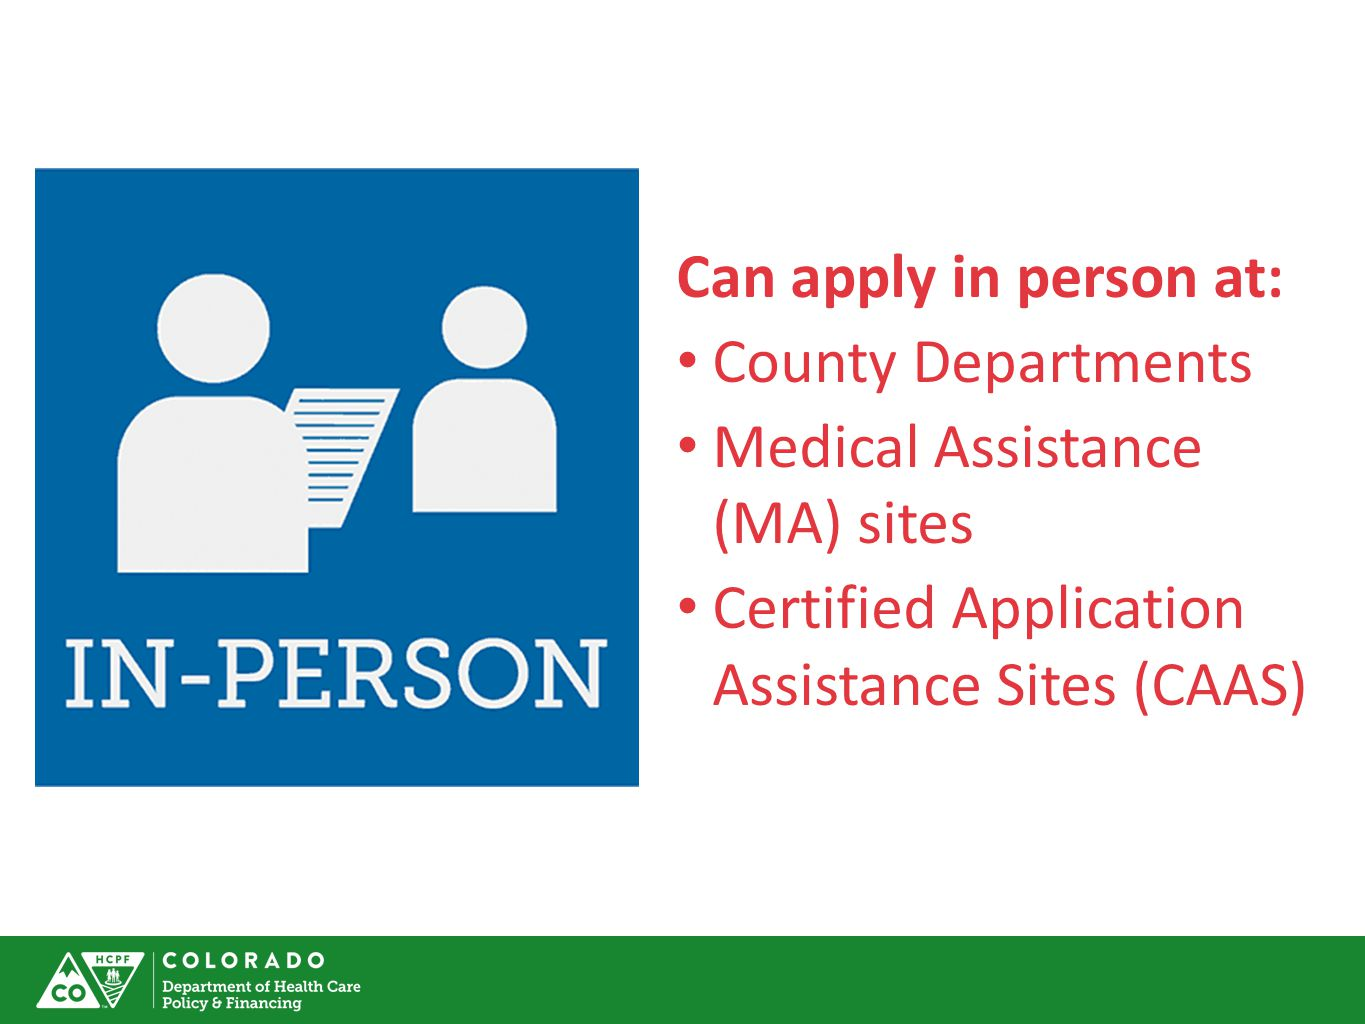 Can apply in person at: County Departments. Medical Assistance (MA) sites.